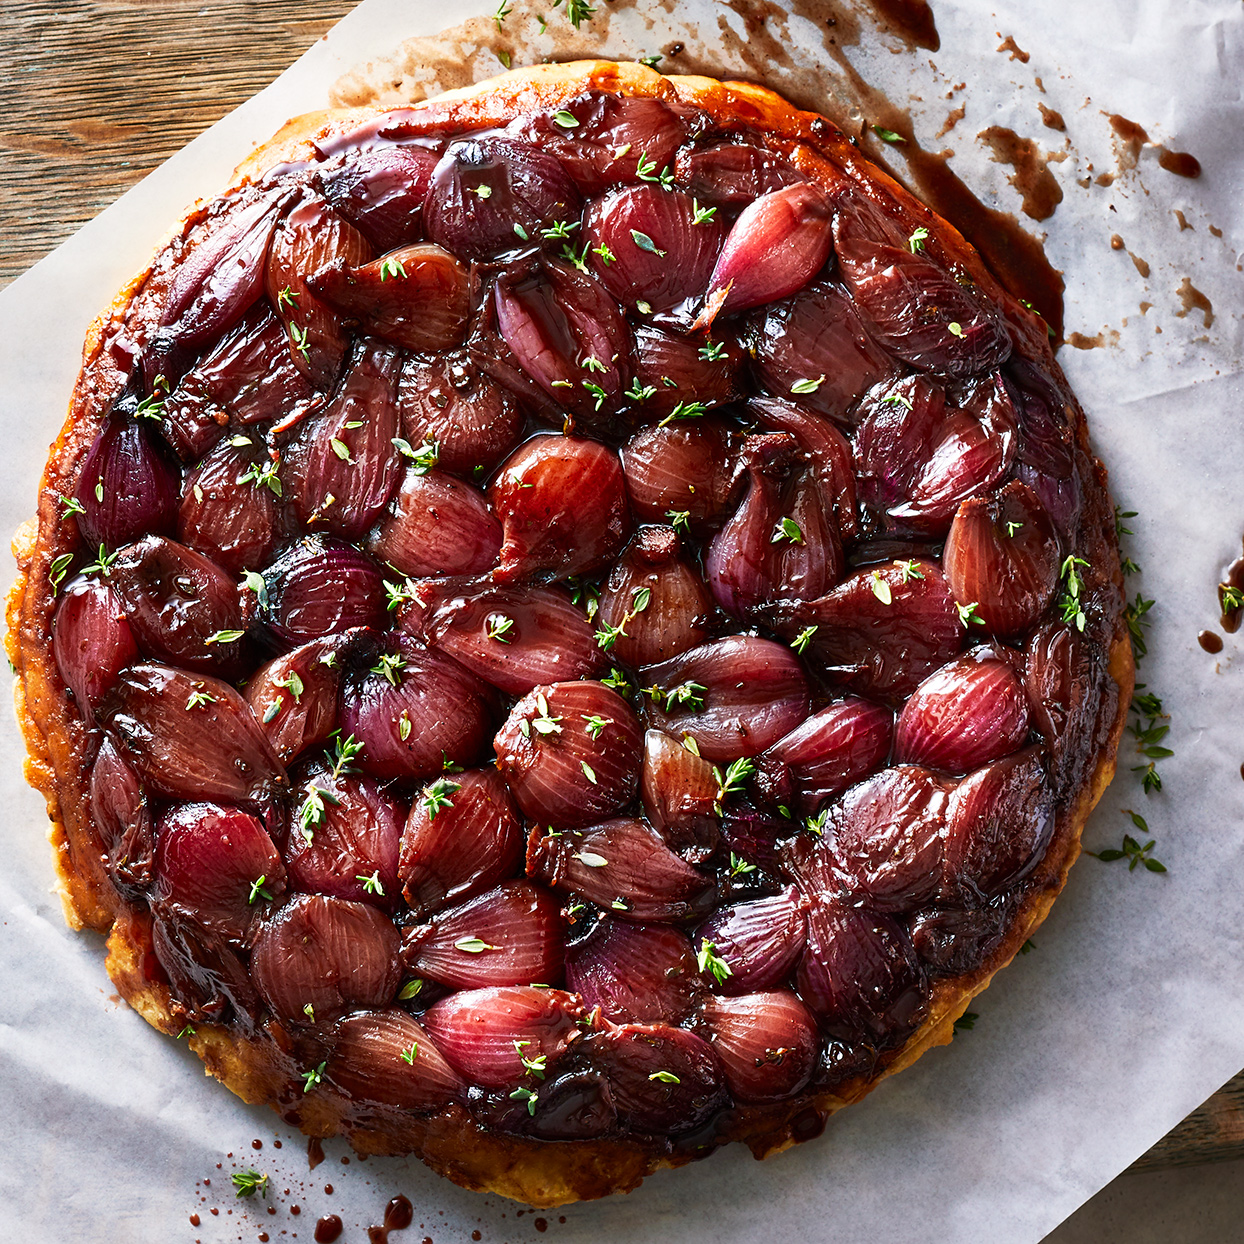 Red Wine & Balsamic Pearl Onion Tarte Tatin